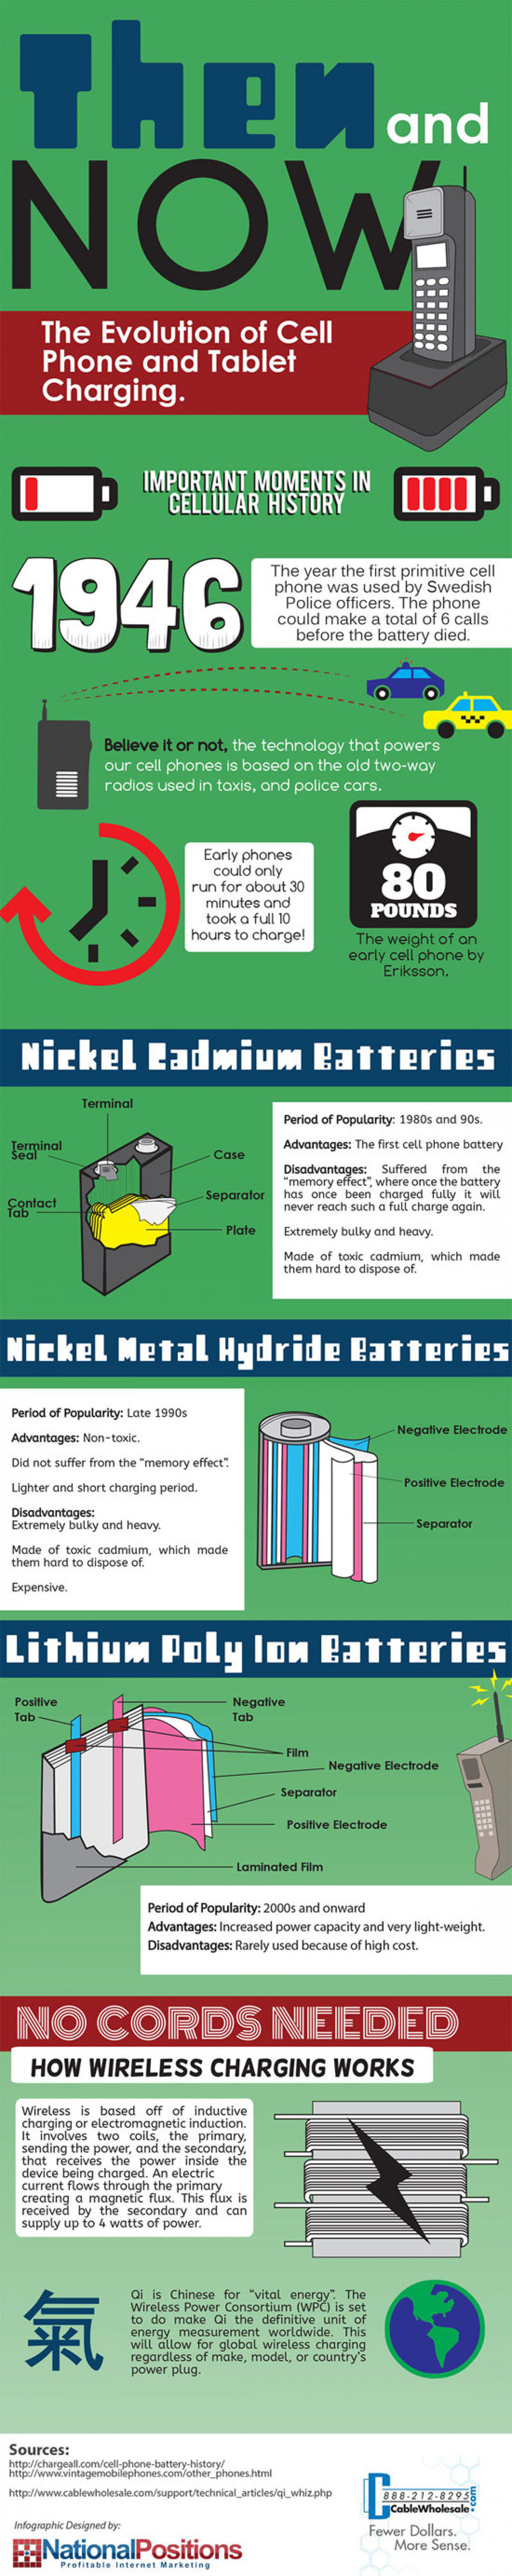 Then and Now: The Evolution of Cell Phone and Tablet Charging Infographic